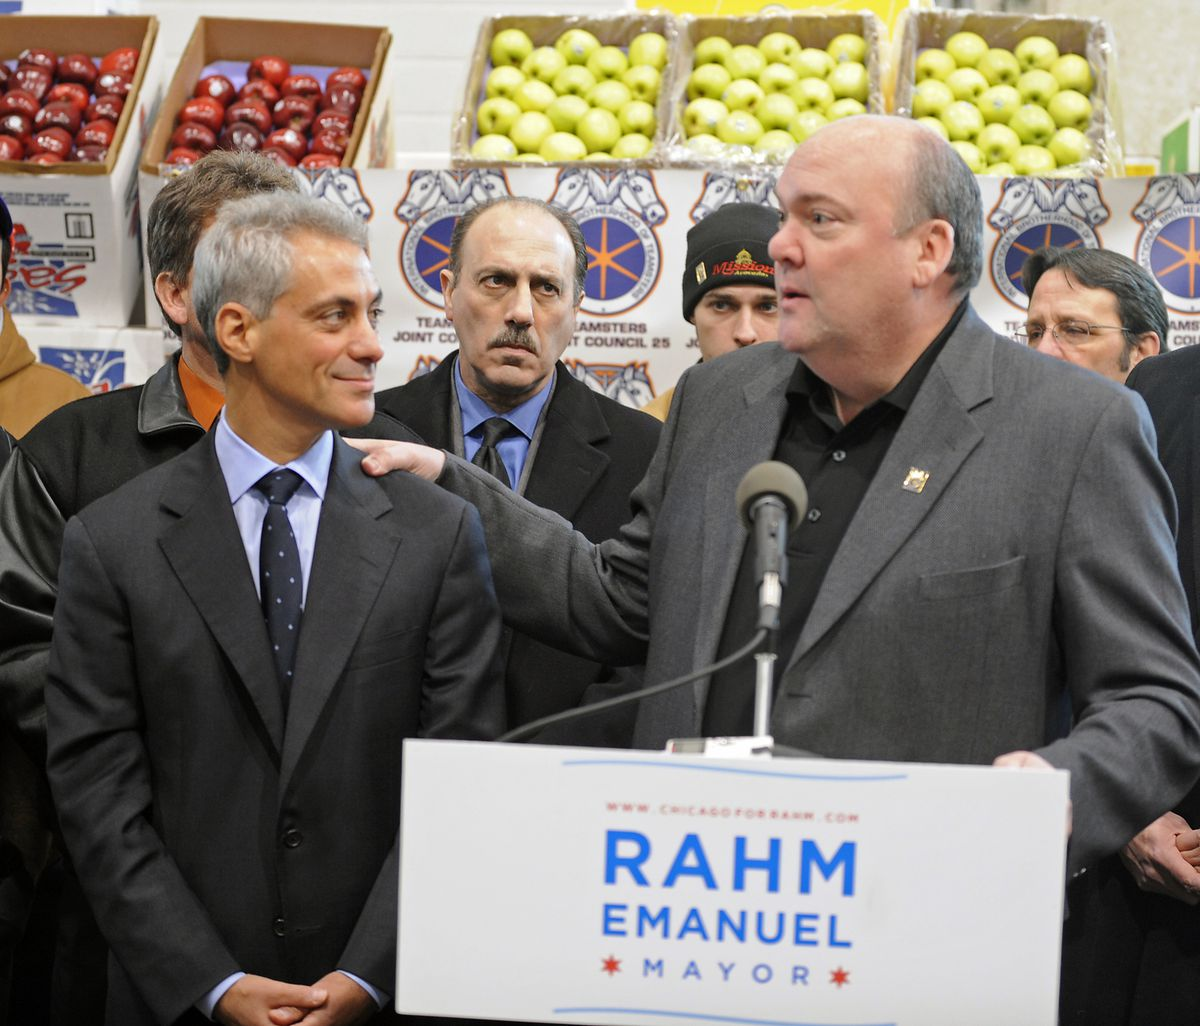 Rahm Emanuel getting the endorsement of John T. Coli Sr. (right) on Jan. 25, 2011, during his first run for mayor.